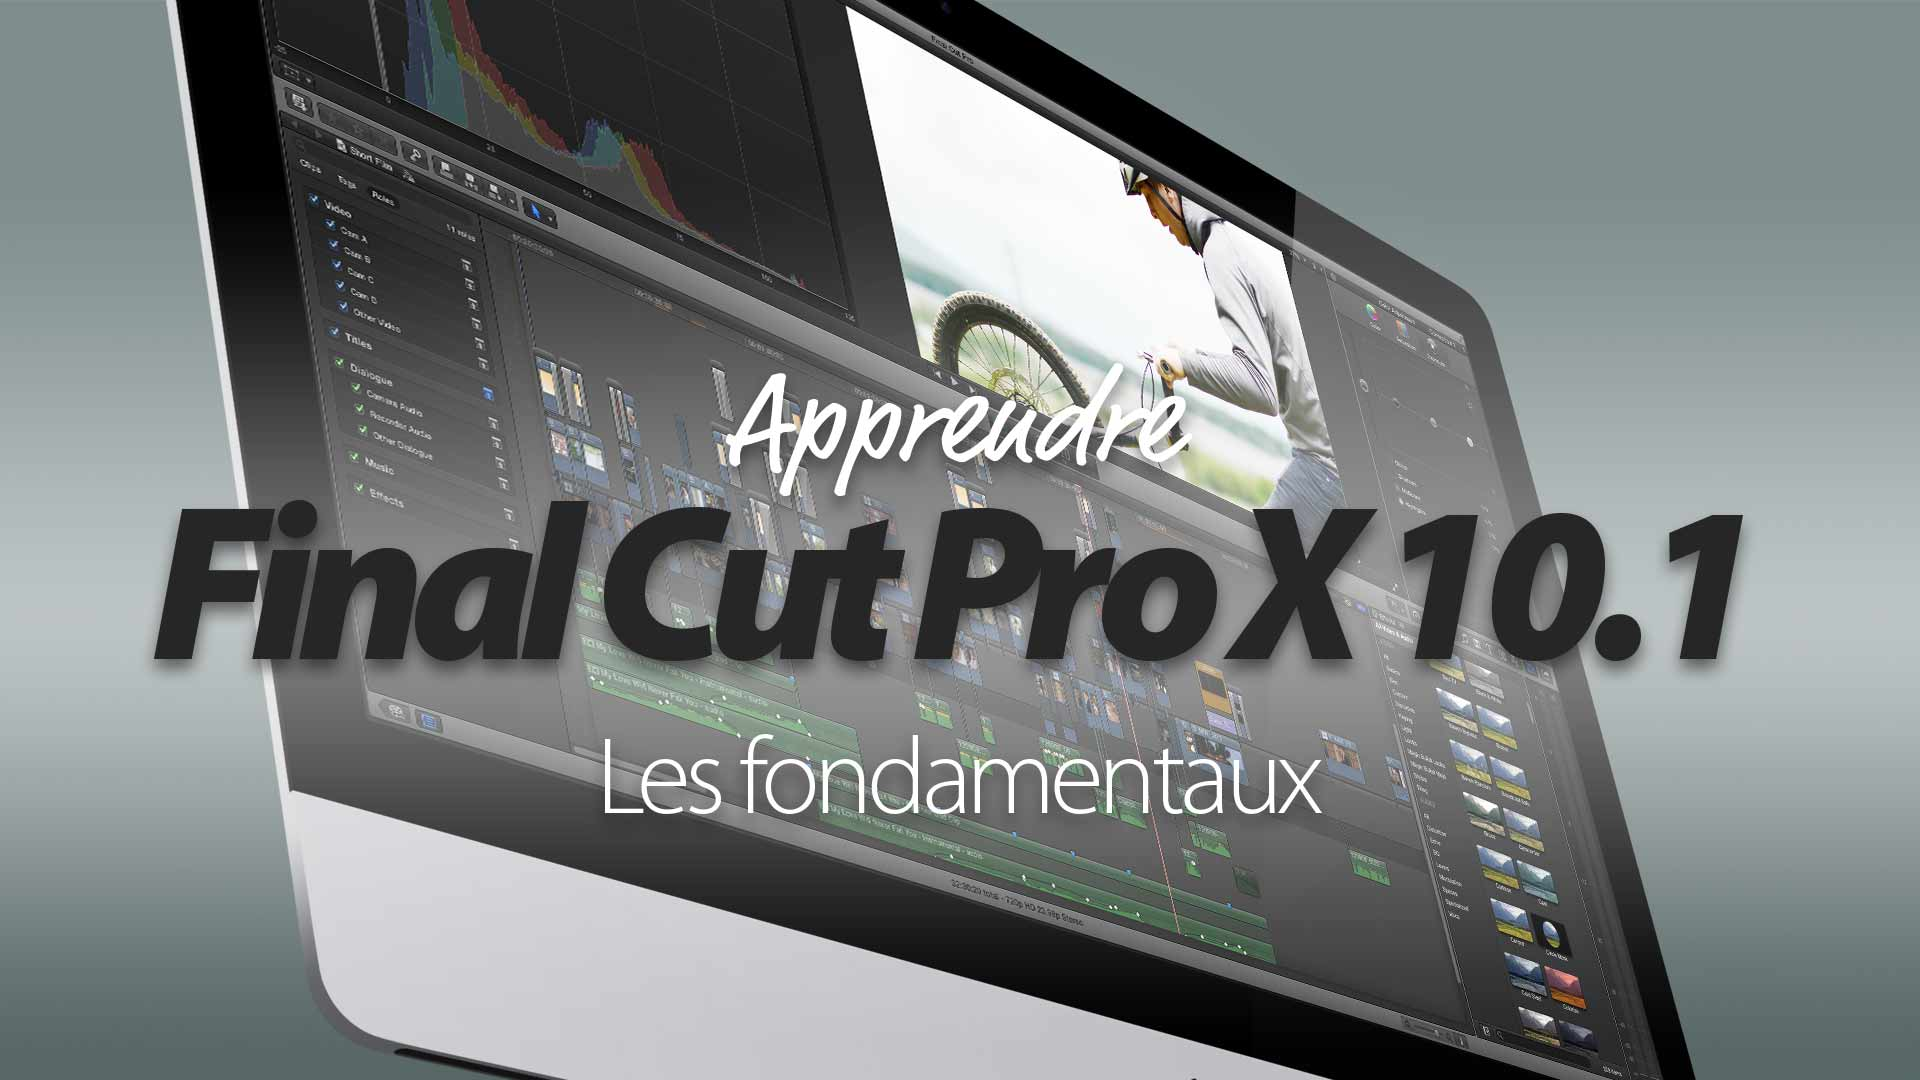 Apprenez Final Cut Pro X 10.1